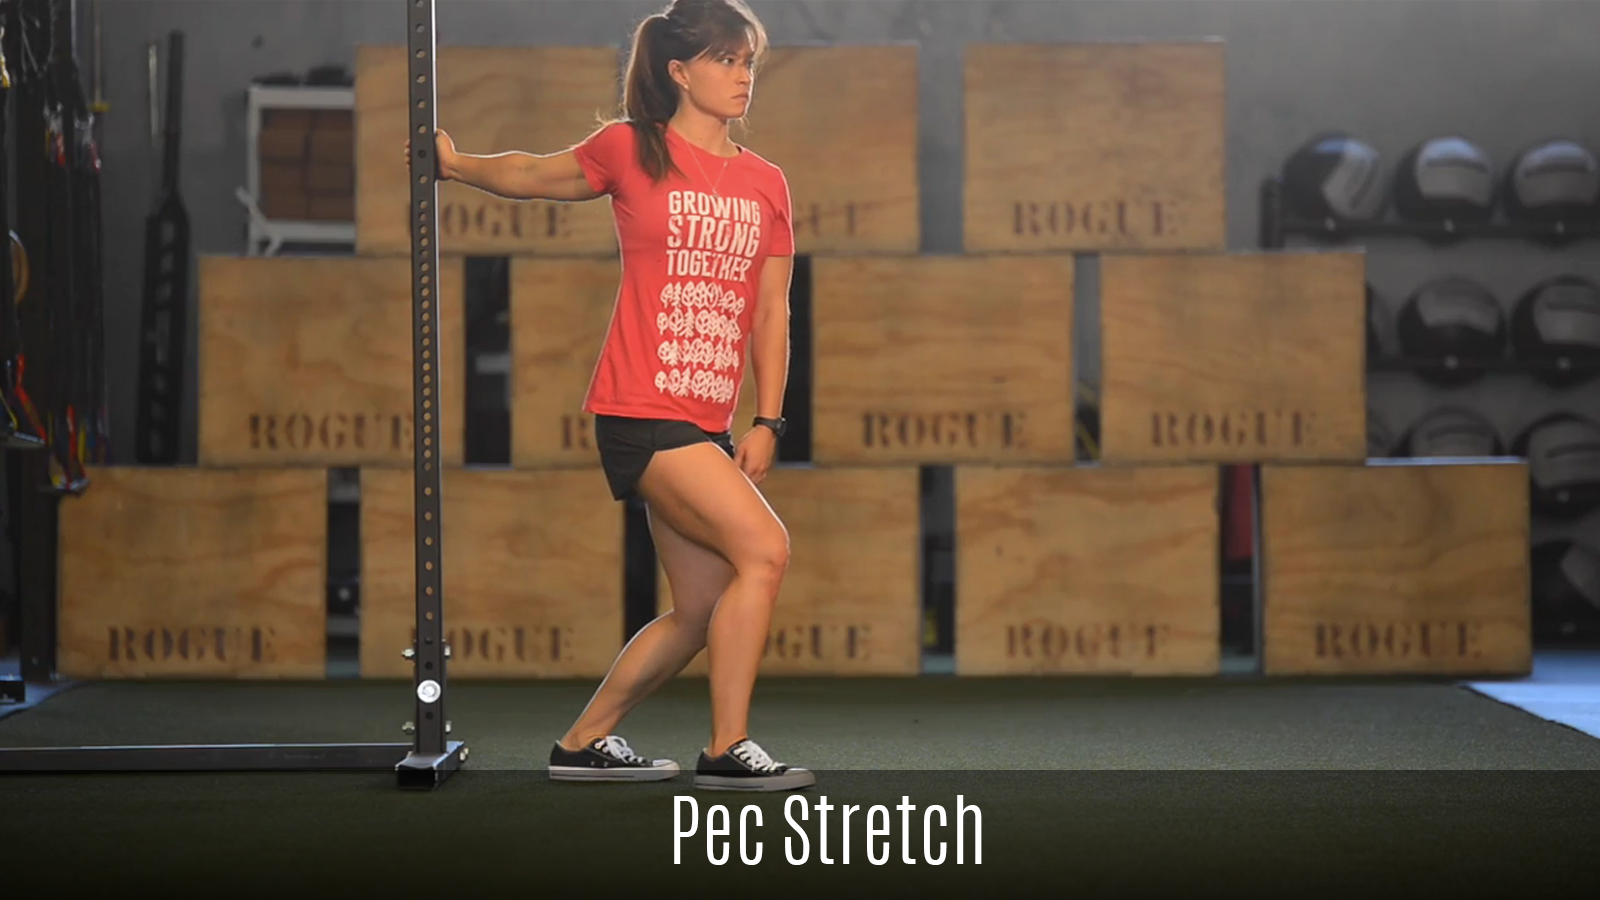 pec stretch demo using rack